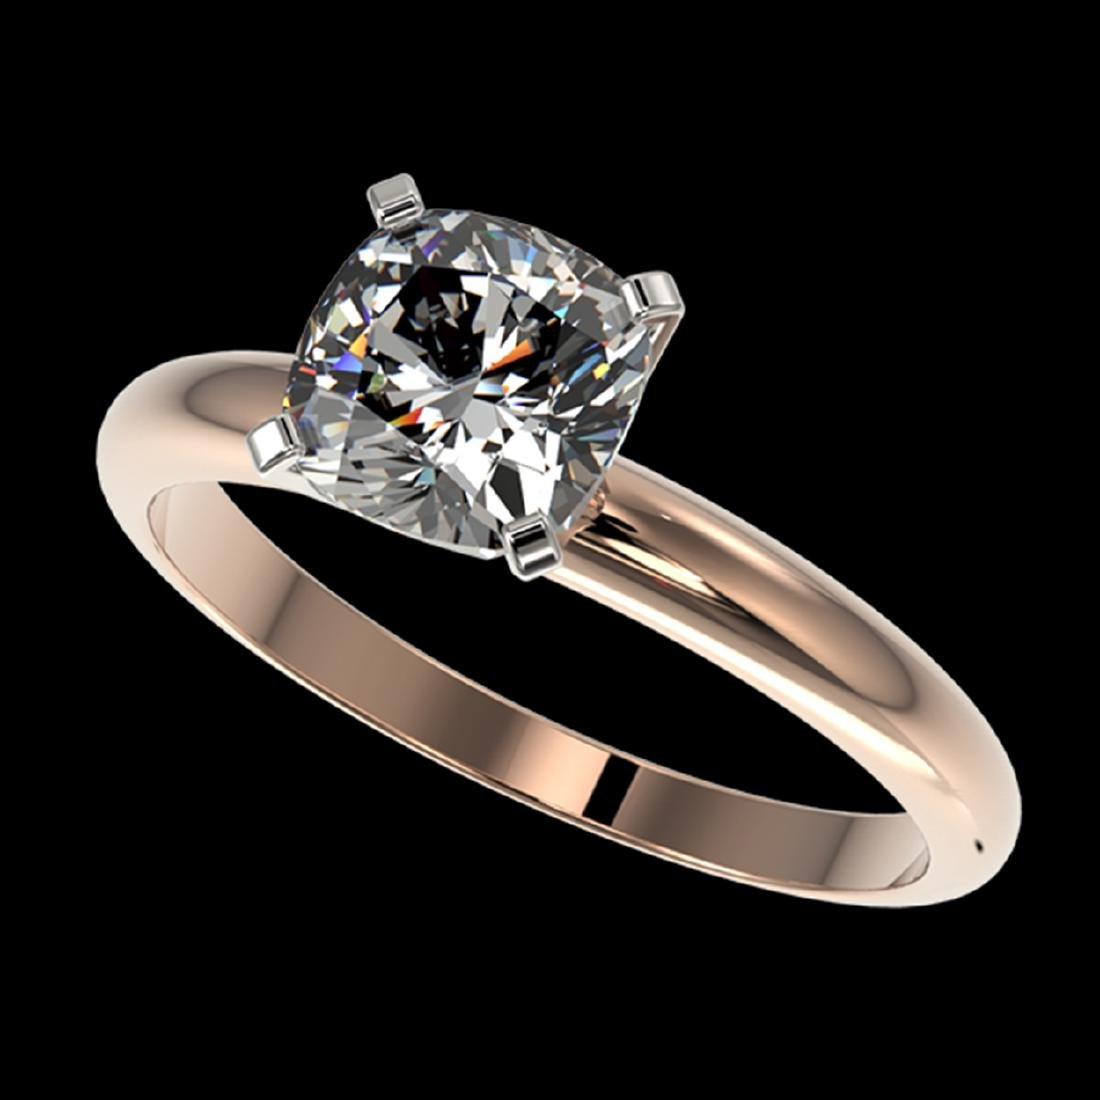 1.25 ctw VS/SI Cushion Cut Diamond Ring 10K Rose Gold -